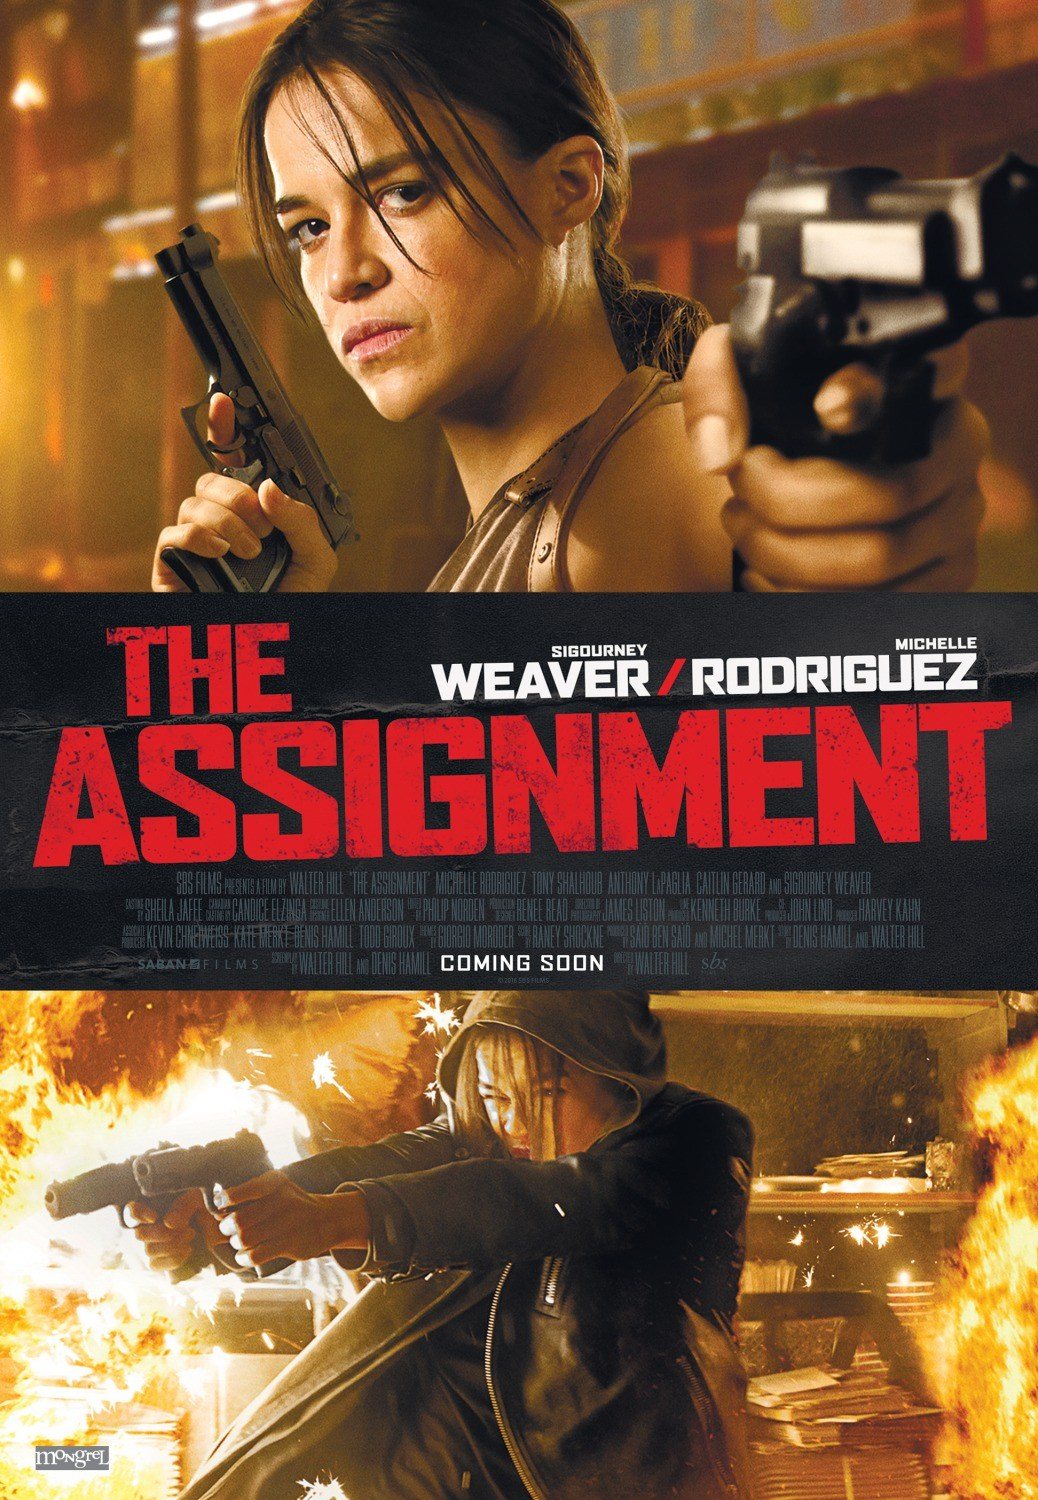 The-Assignment-movie-poster-Tomboy